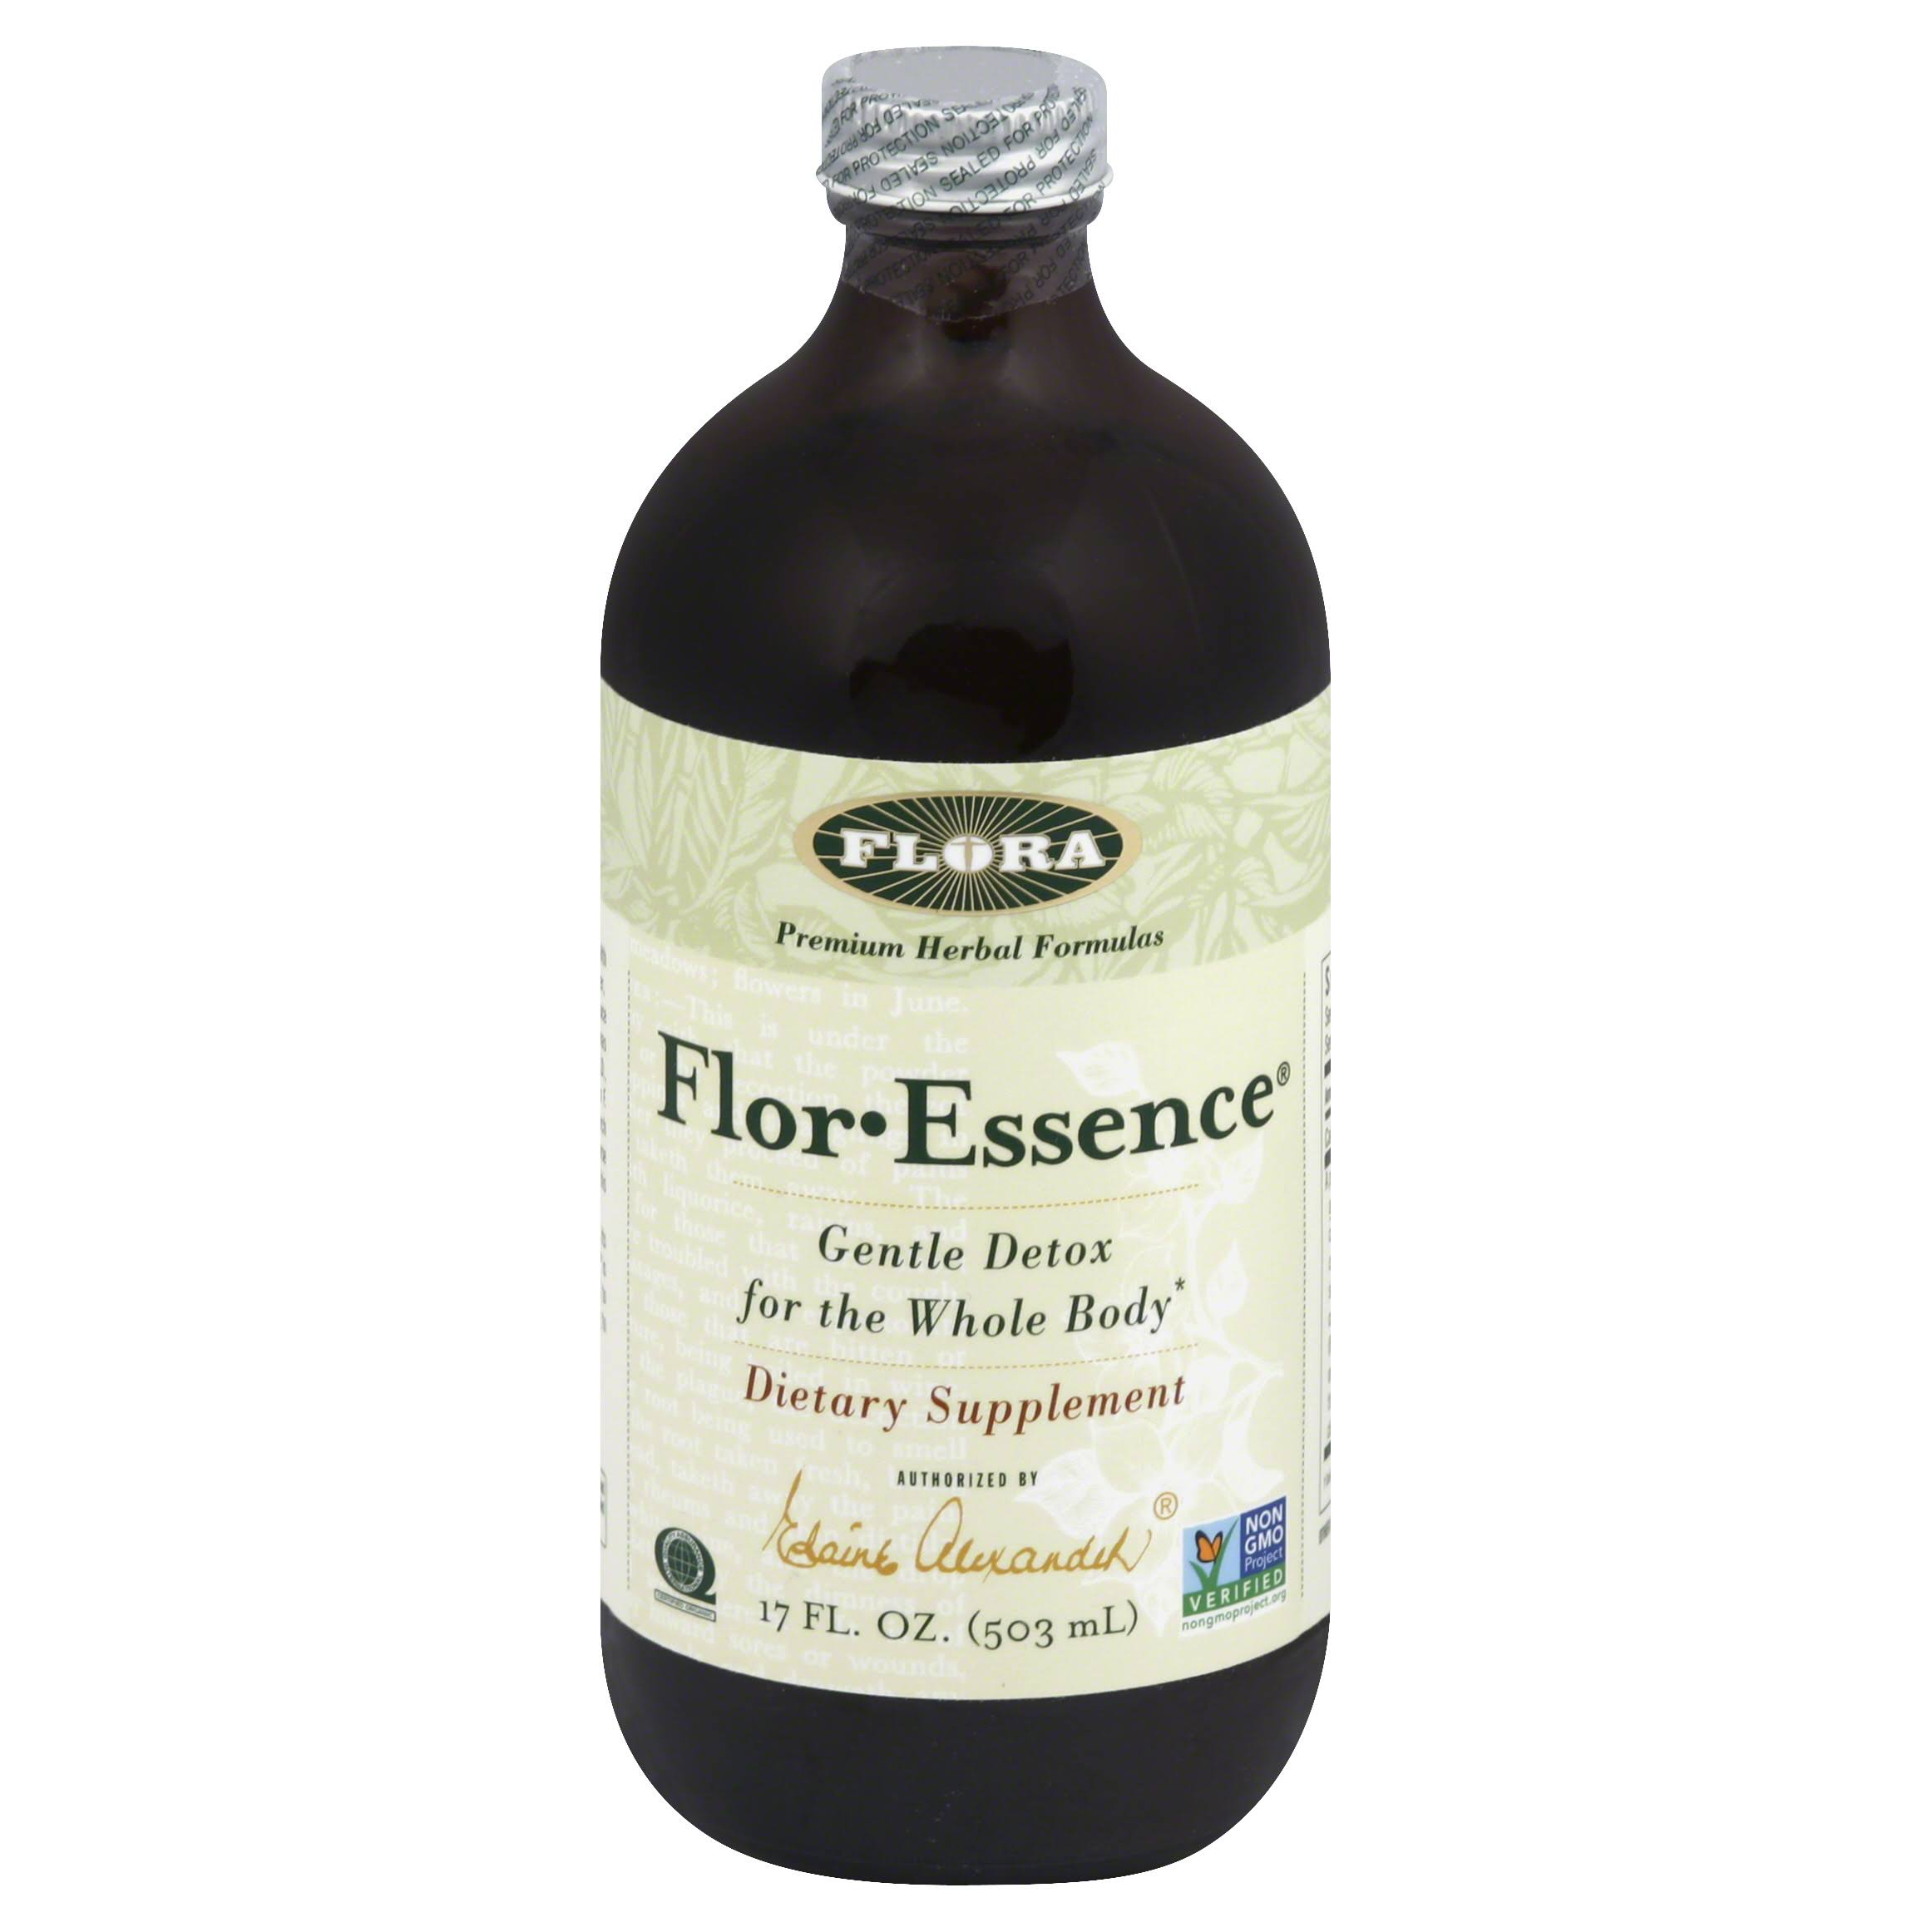 Flora Flor-Essence Gentle Detox - 17 fl oz bottle